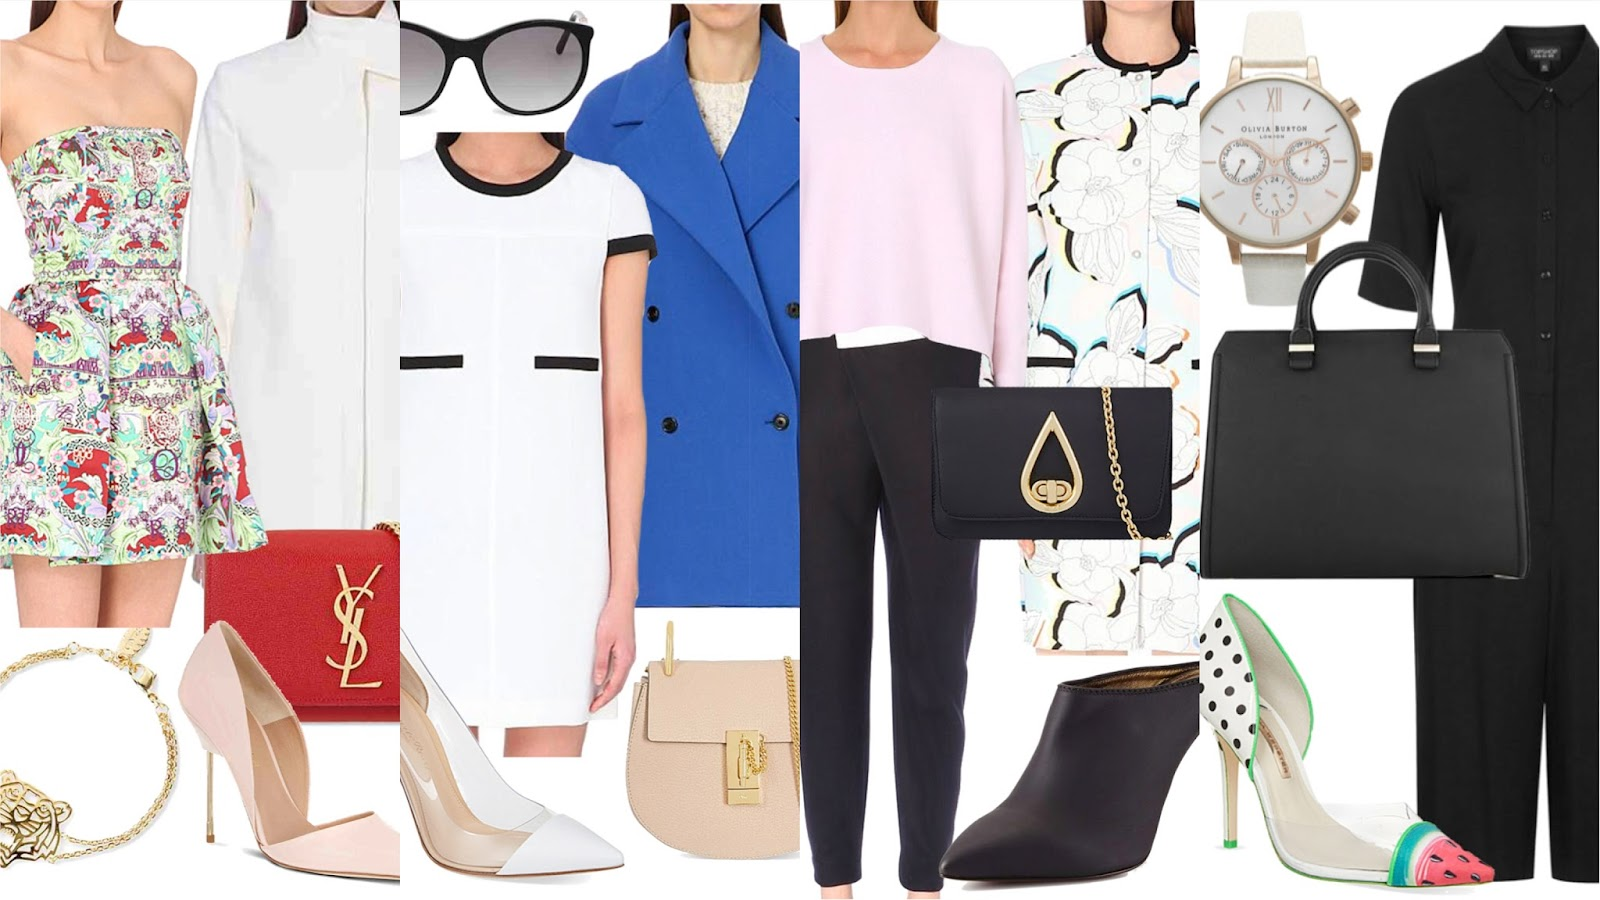 London fashion week 2015 outfit planning